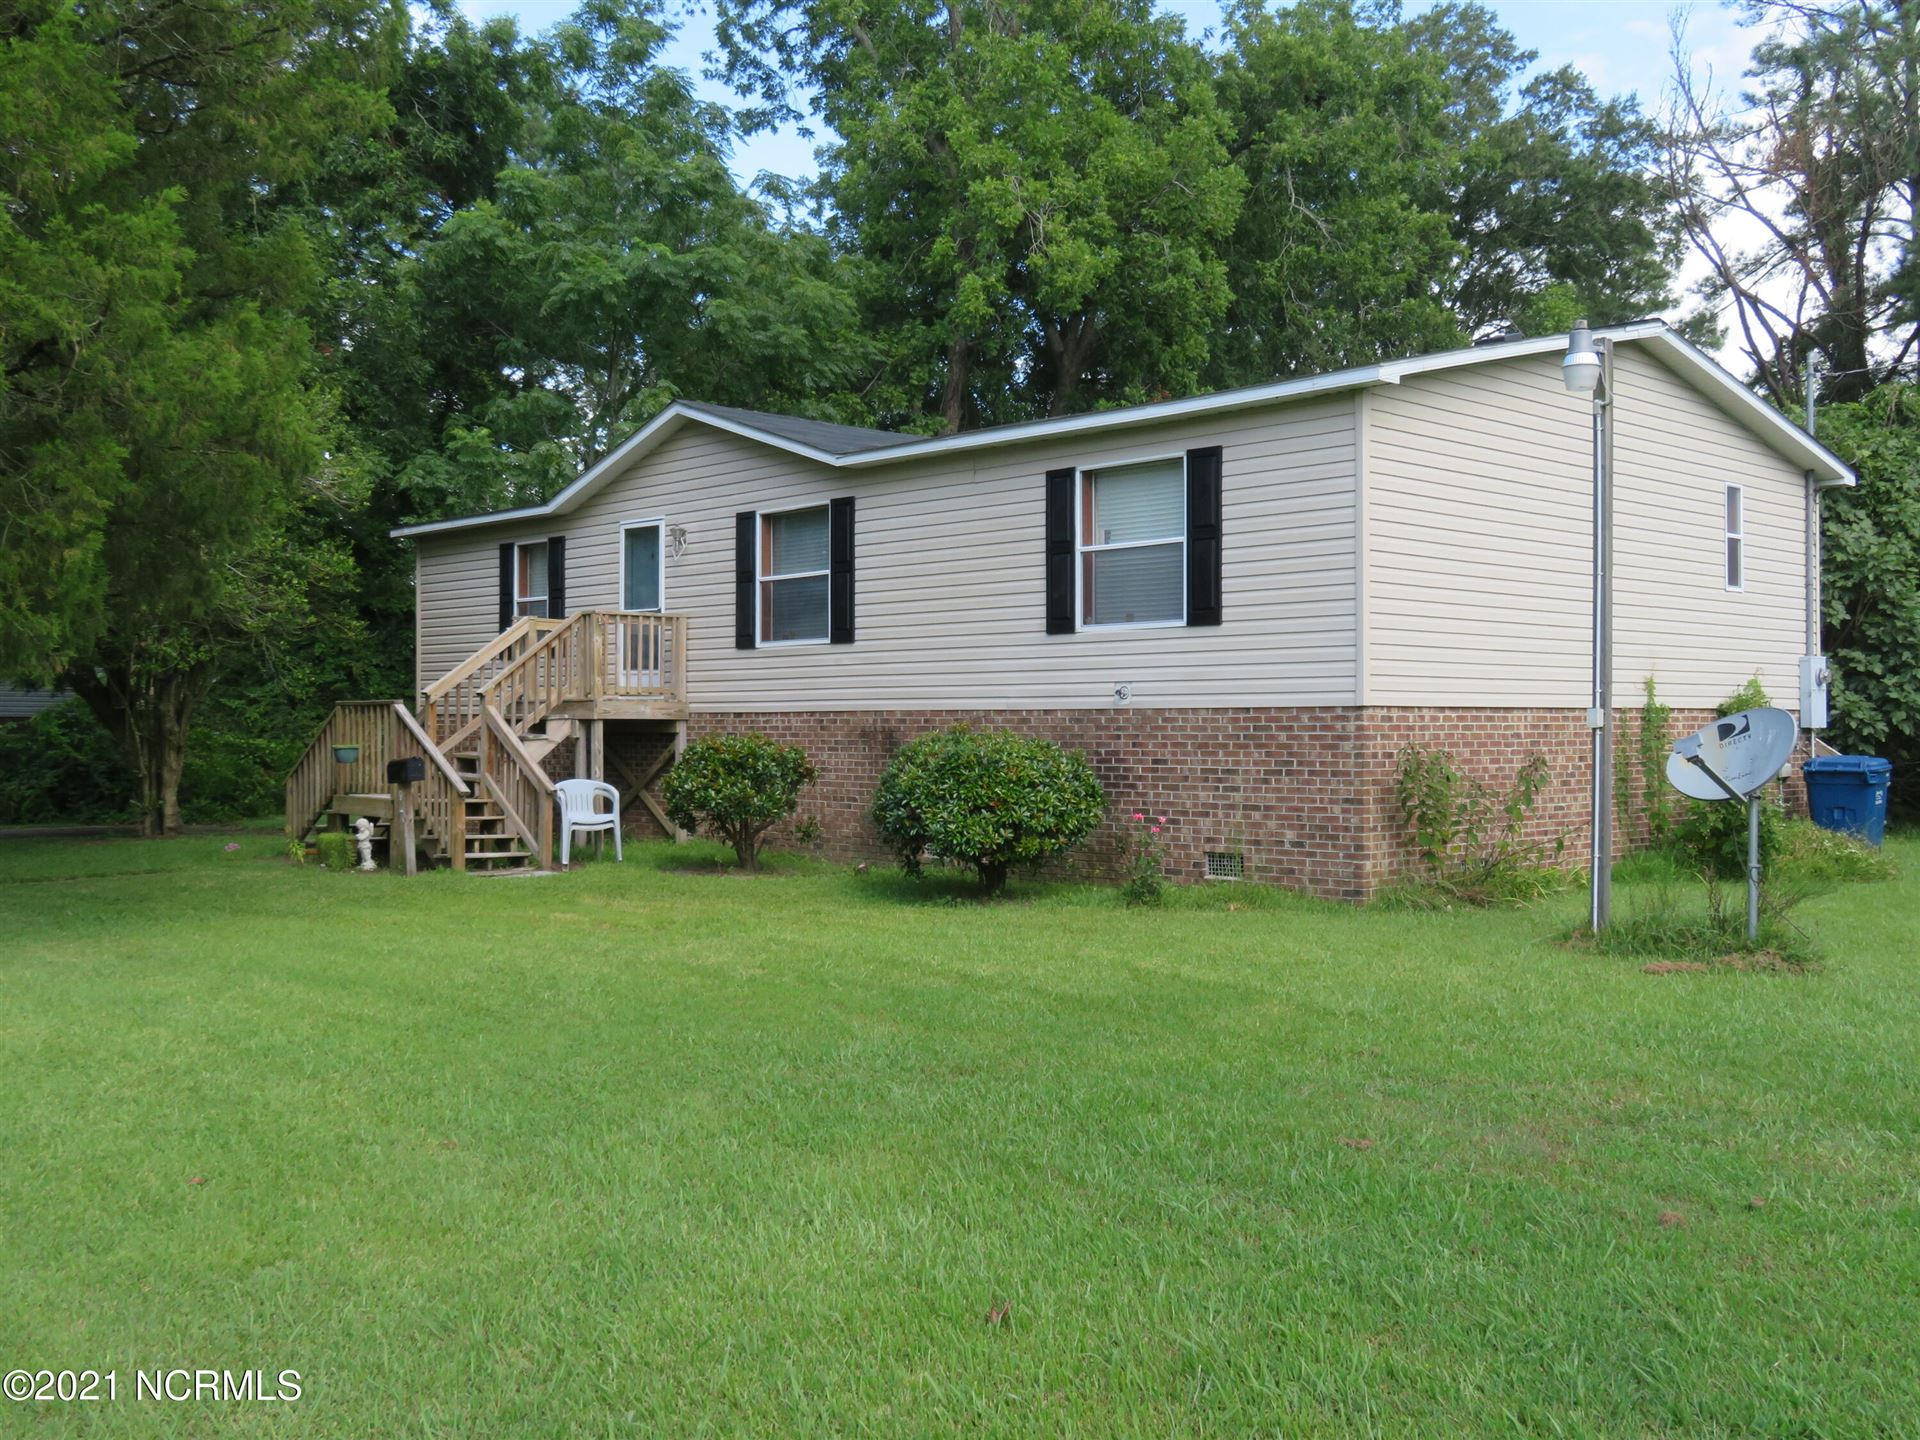 Photo of 804 Old County Road, Belhaven, NC 27810 (MLS # 100286836)